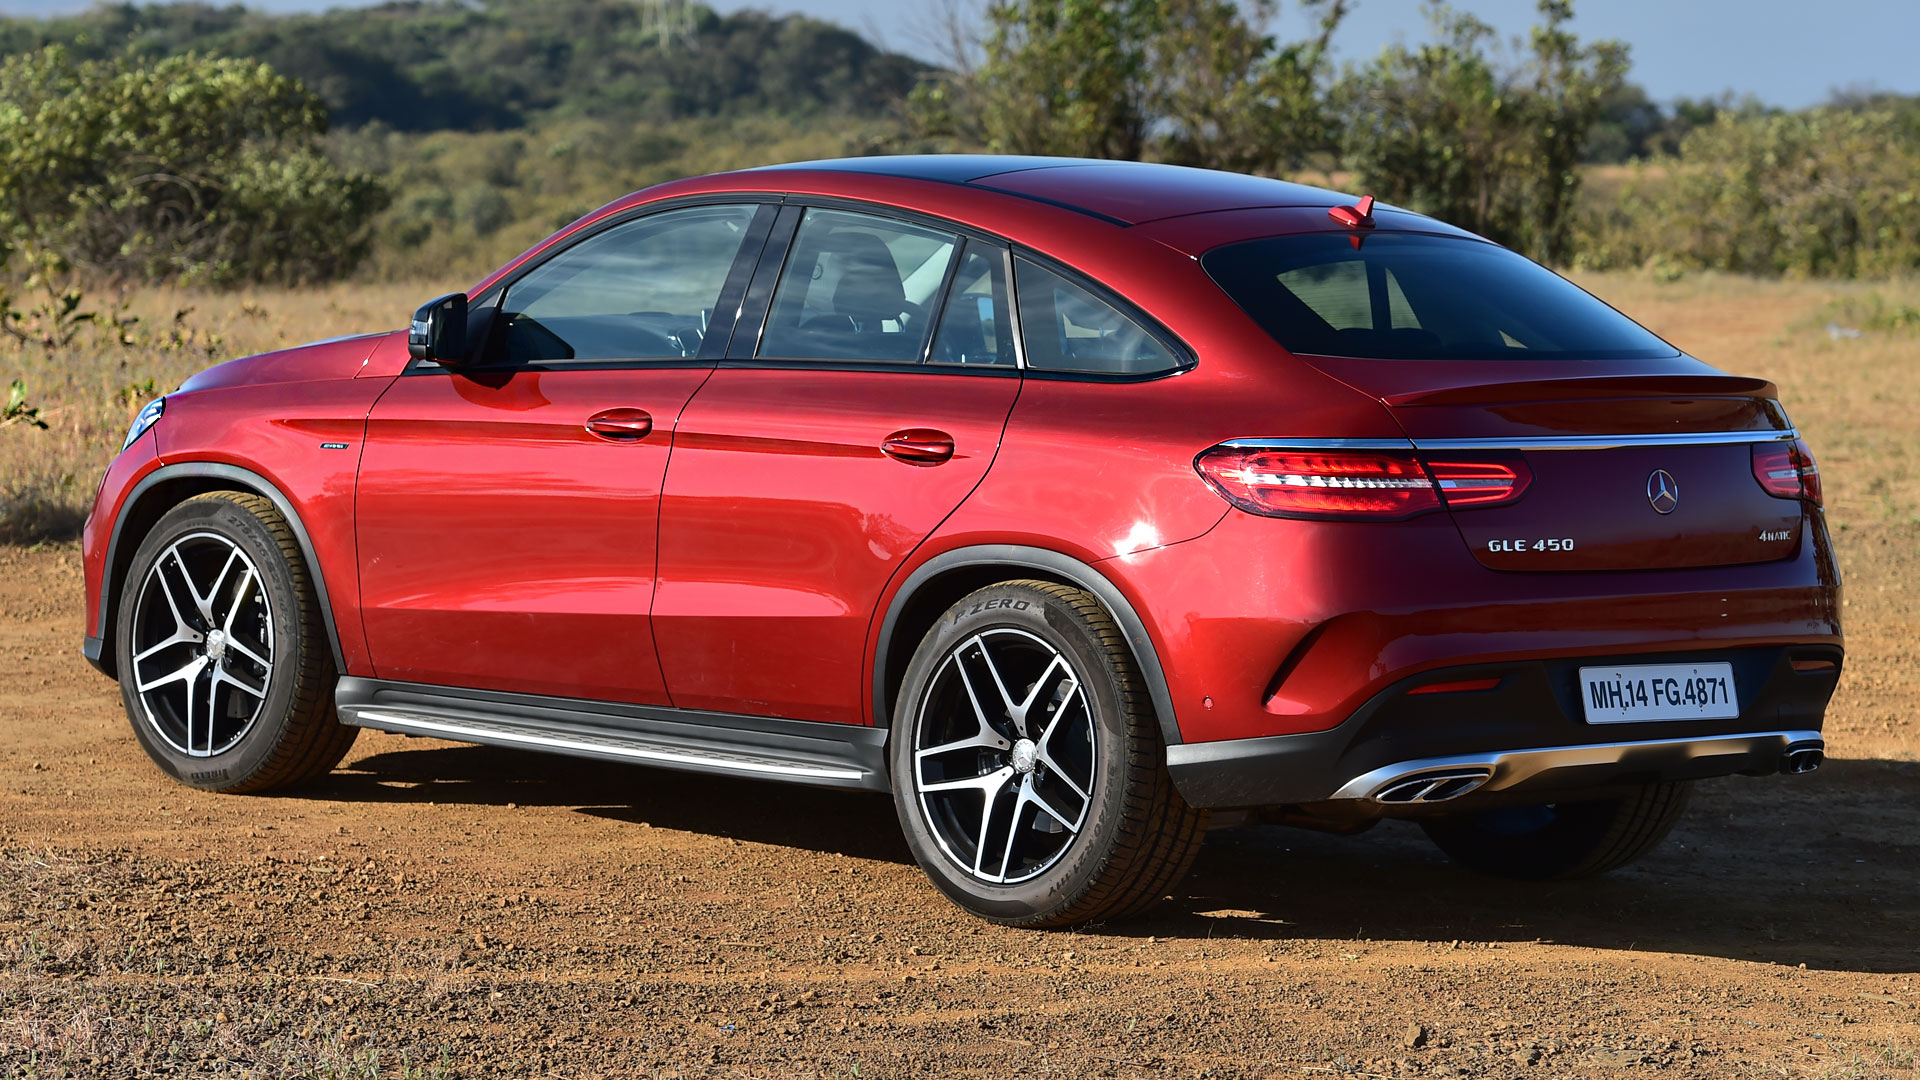 Mercedes Benz GLE 2016 450 AMG Coupe Price Mileage Reviews